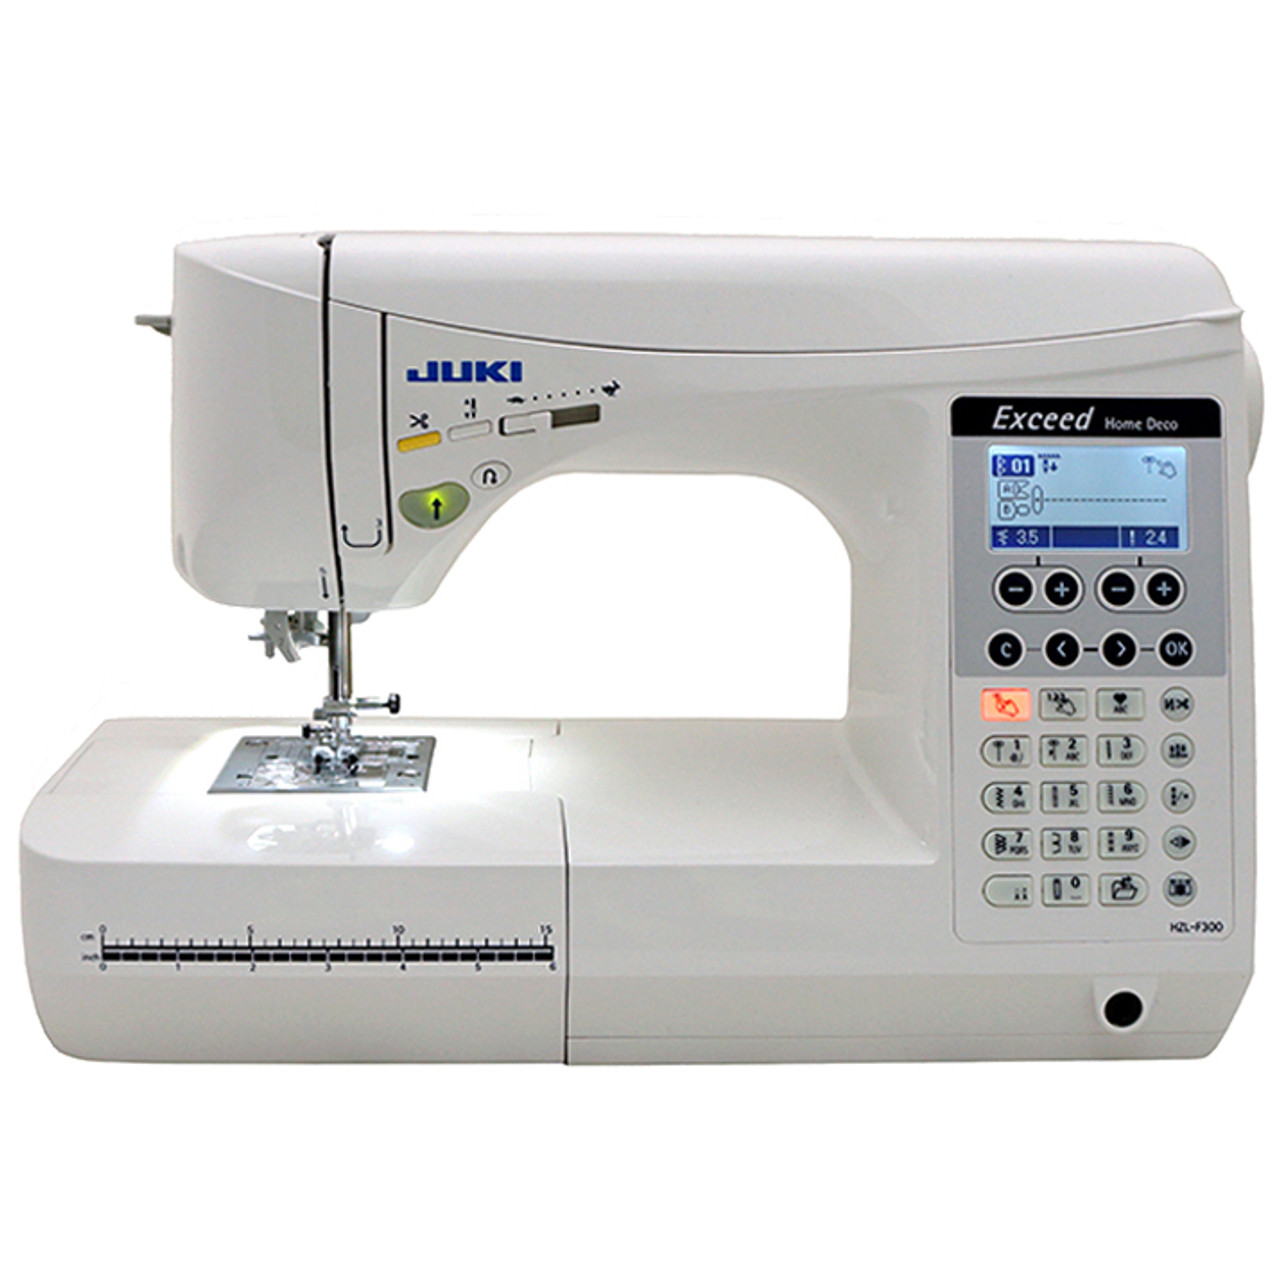 Juki Exceed Hzl F300 Home Deco Computerized Sewing Machine 599 00 Free Shipping